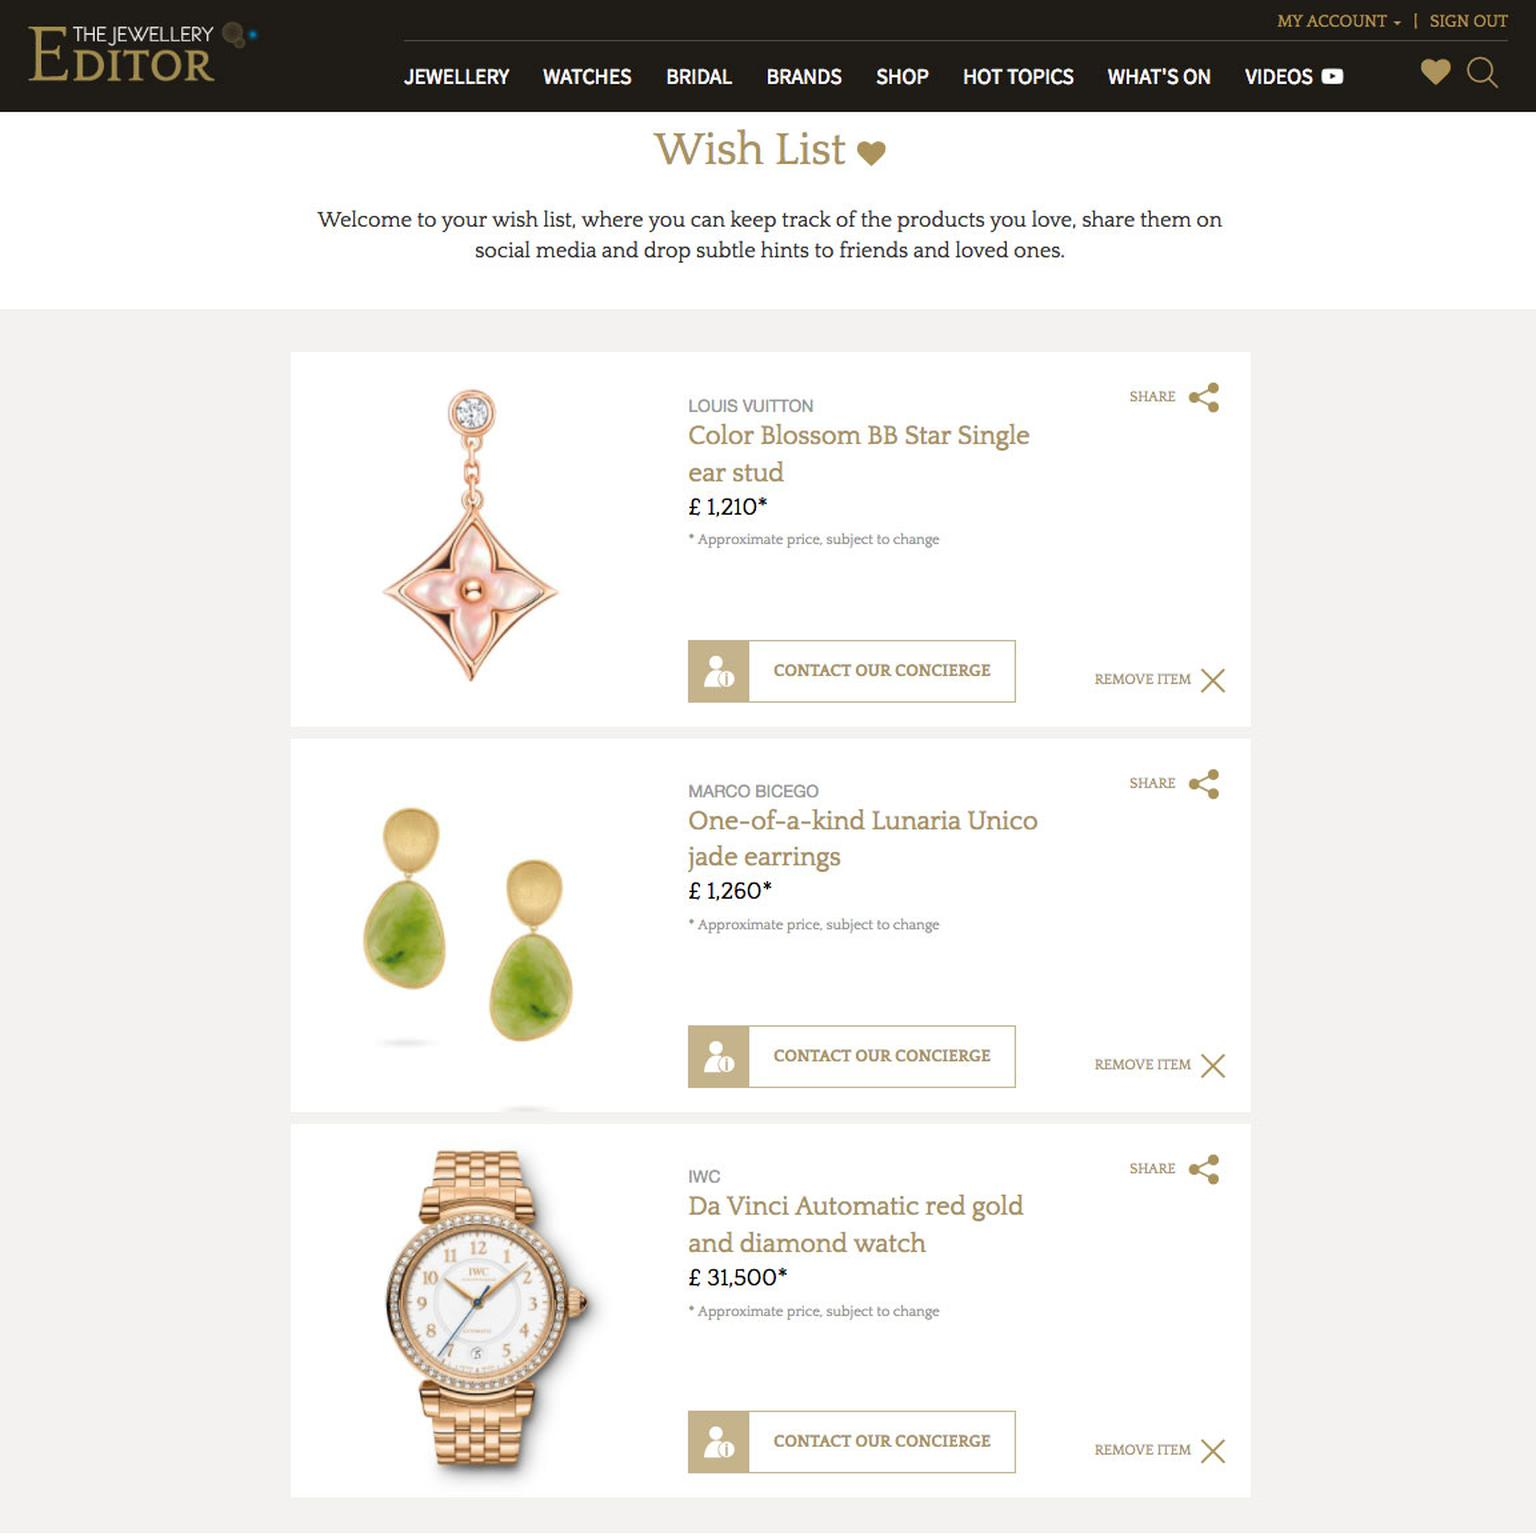 Jewellery and watch wish list on The Jewellery Editor